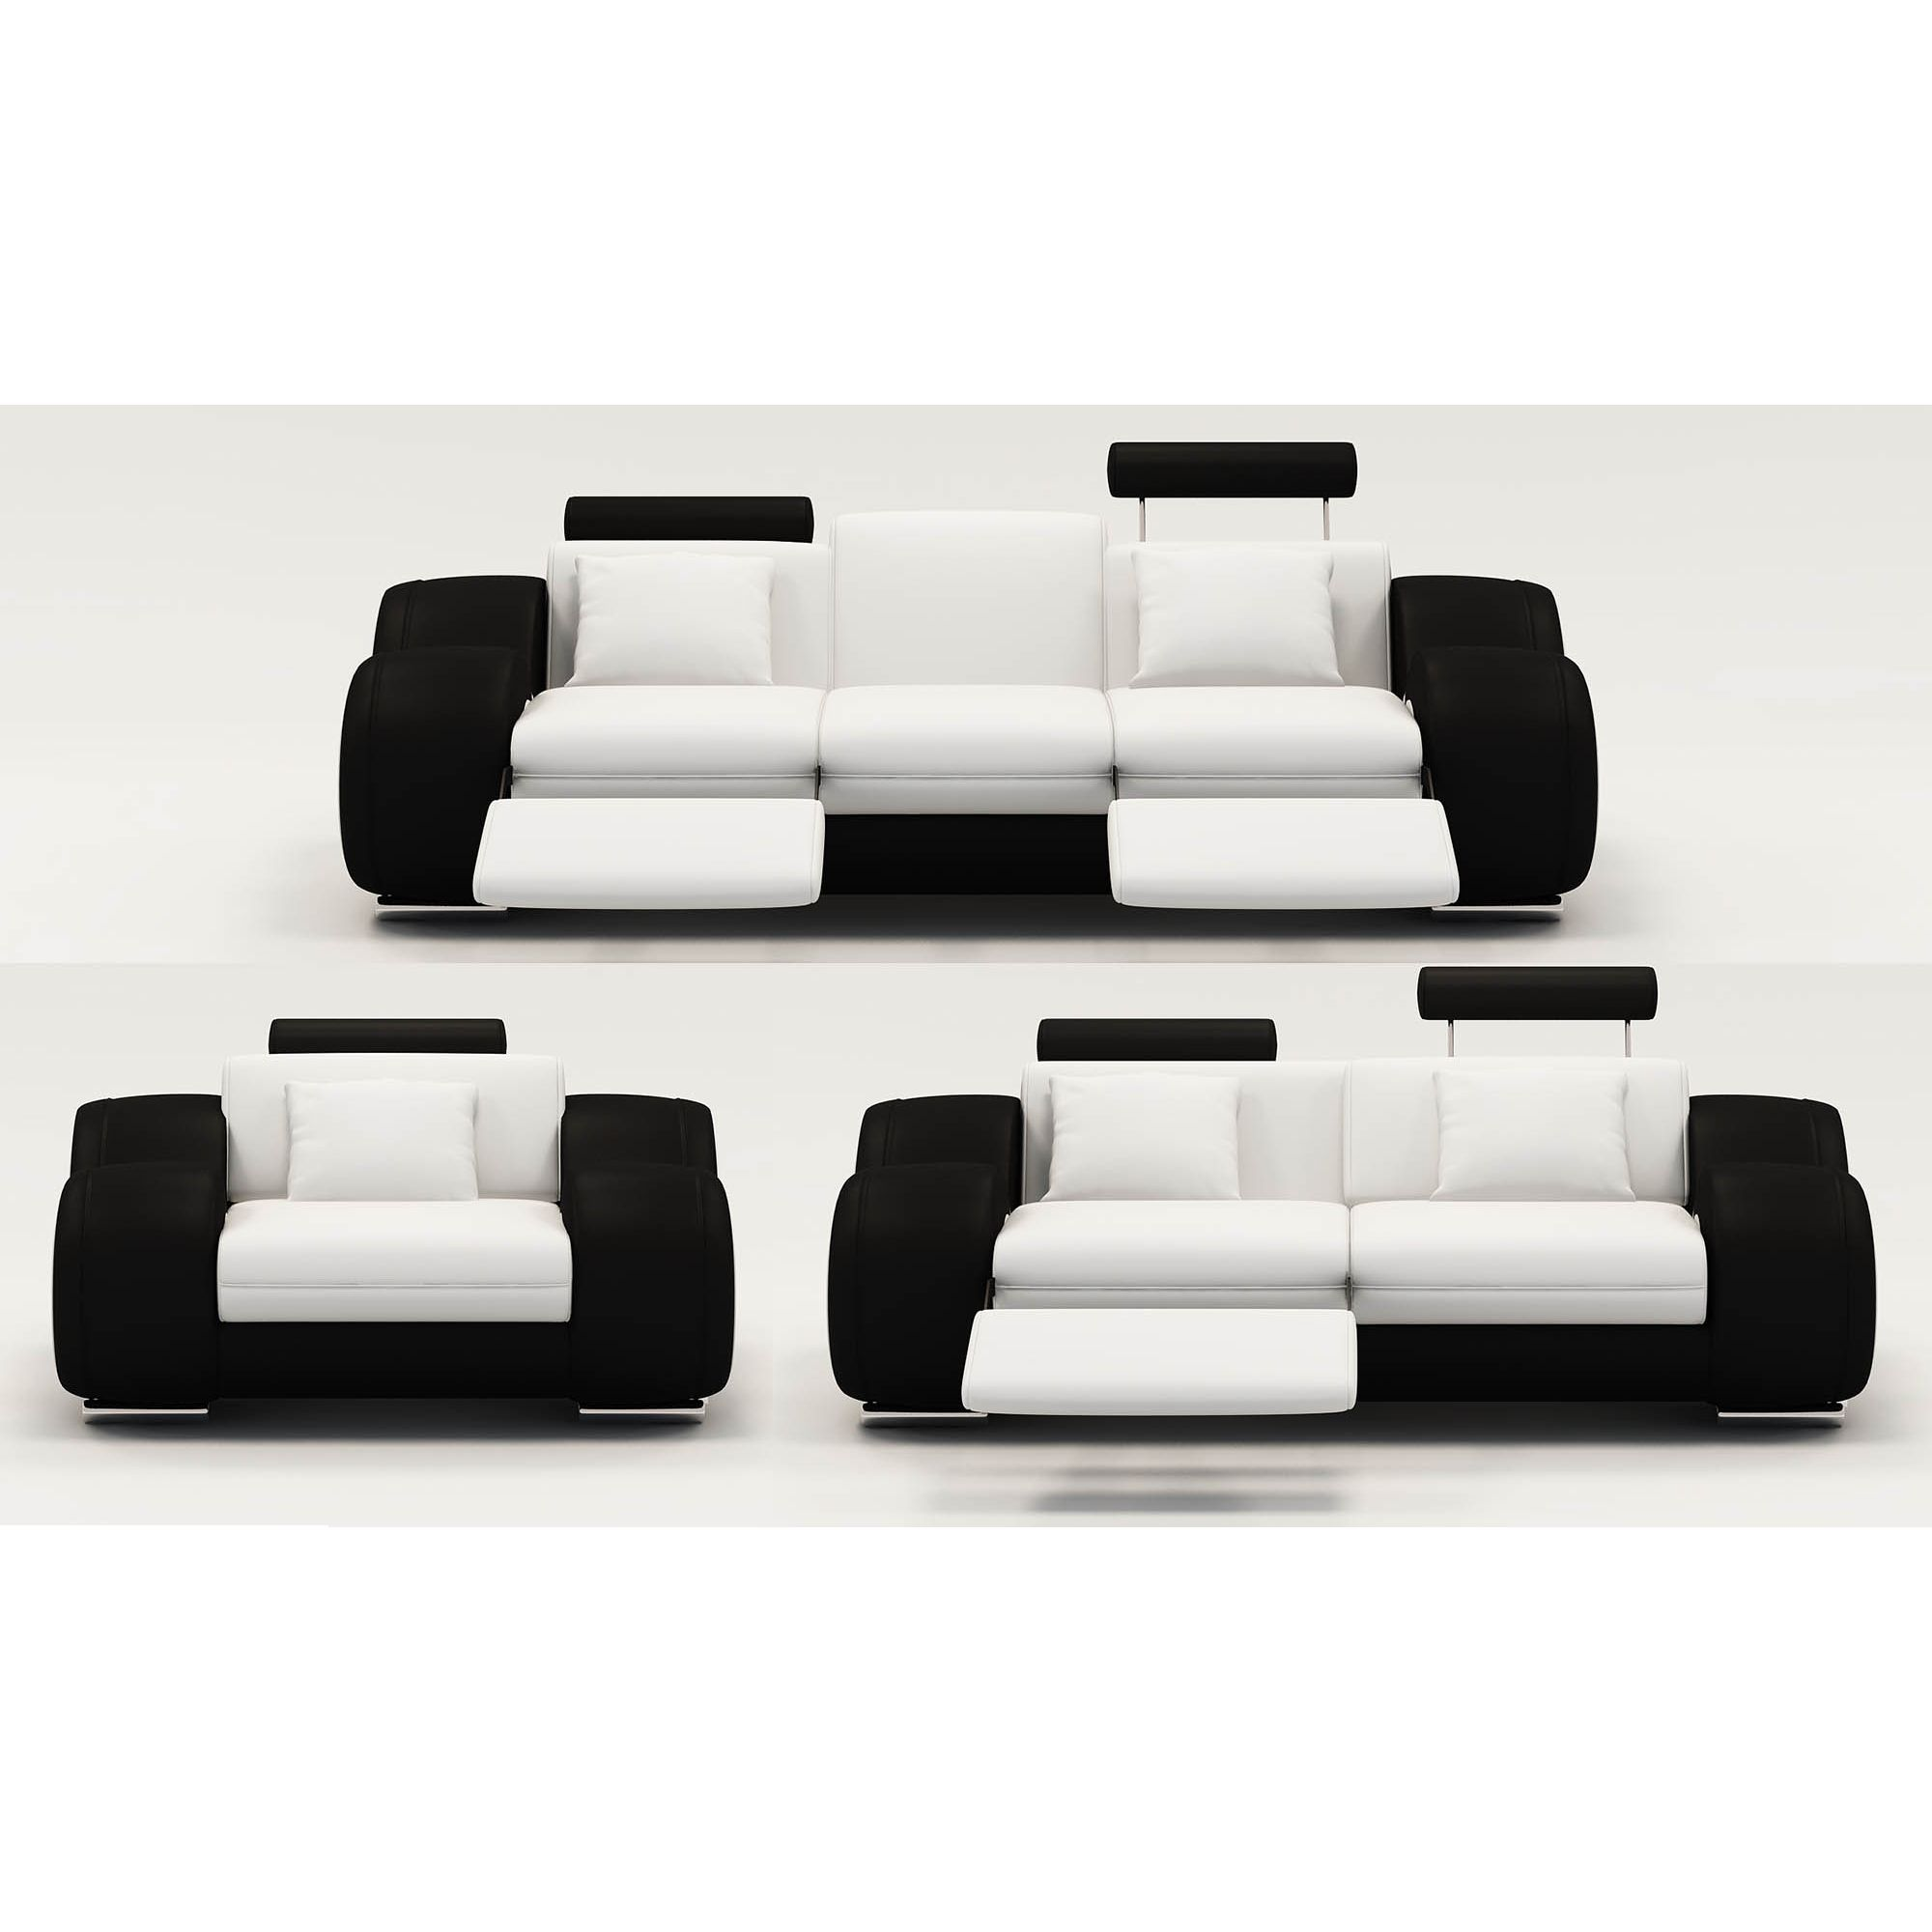 Deco in paris ensemble canape relax design 3 2 1 places for Canape noir et blanc